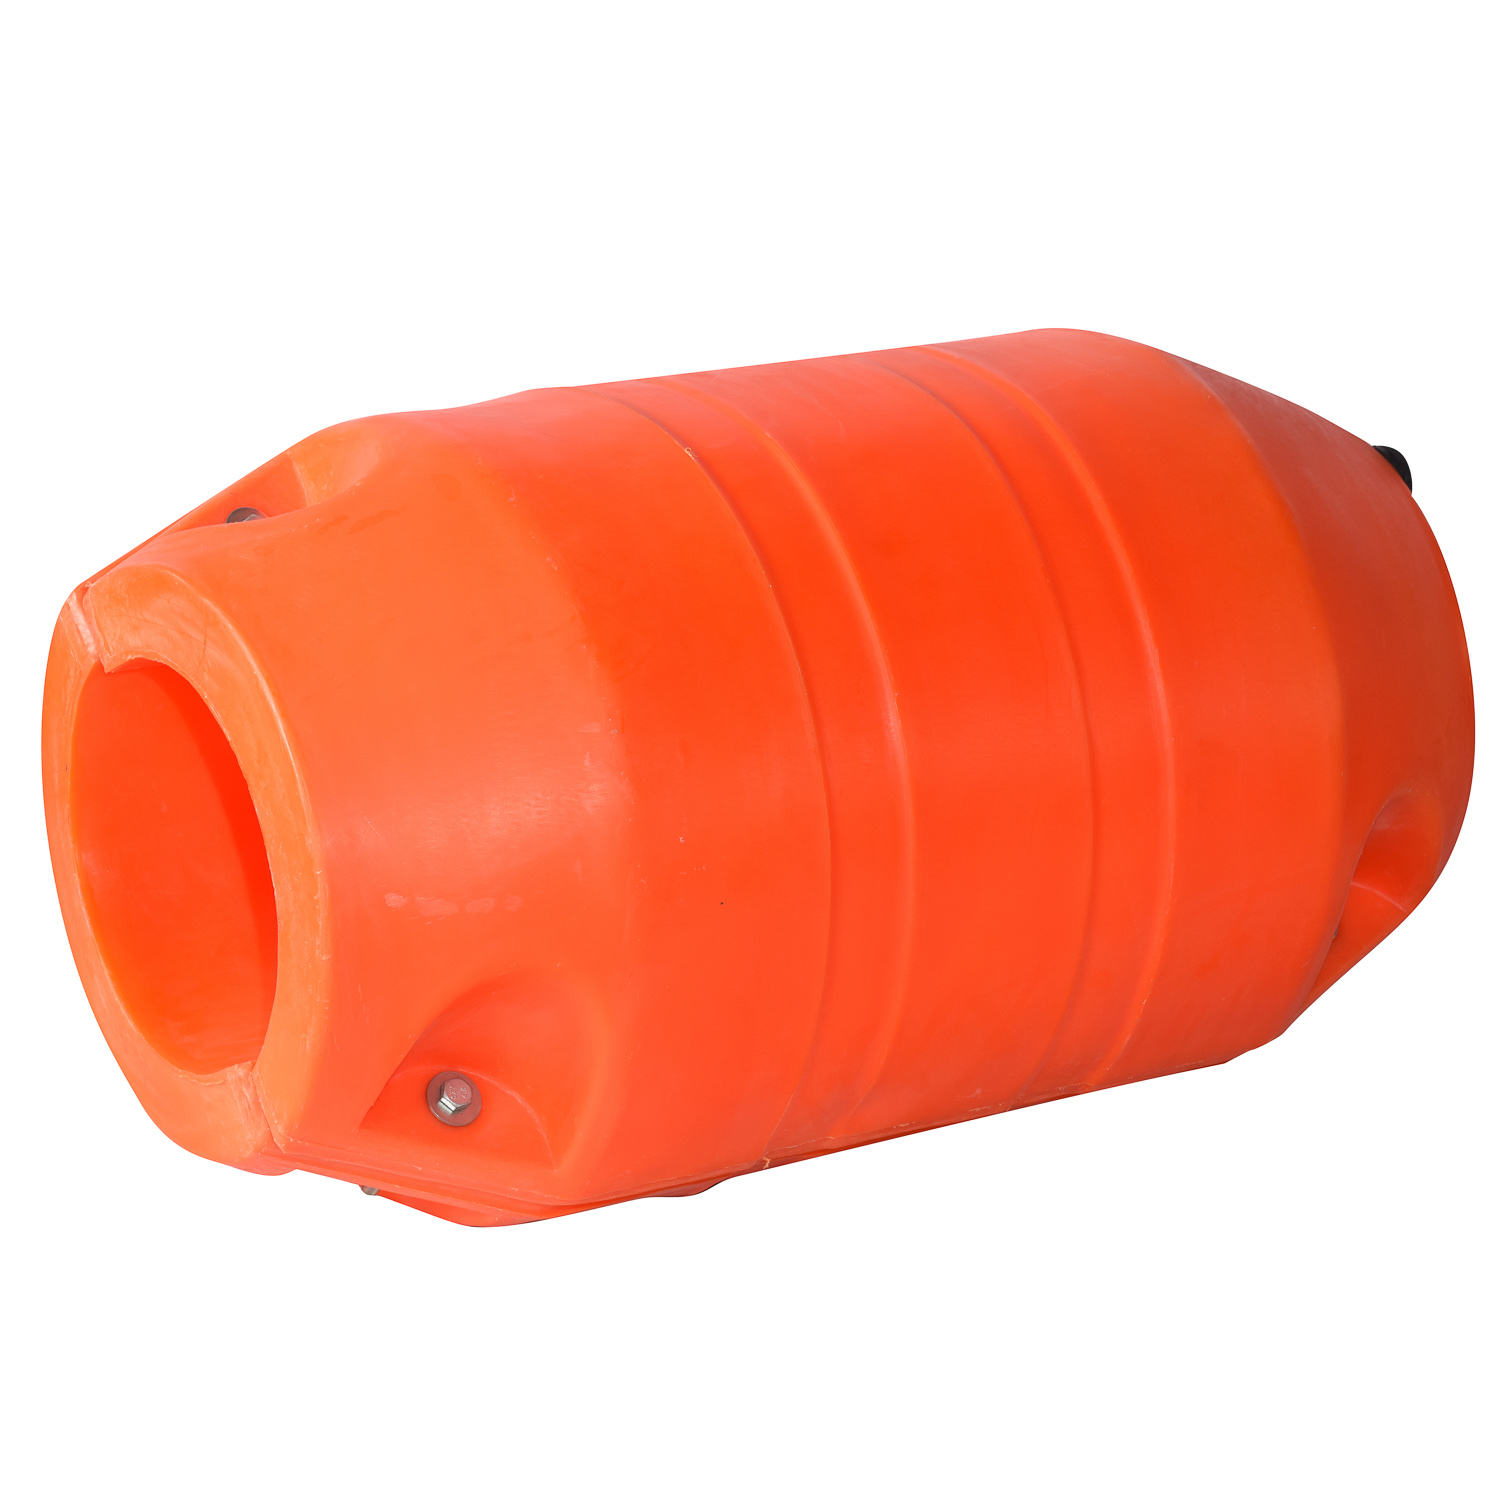 One-Stop Service [ Diameter Floater Floats ] 550mm Inner Diameter Dredge Pipe Floater Oil Transportation Hose Floats Floating Pipeline